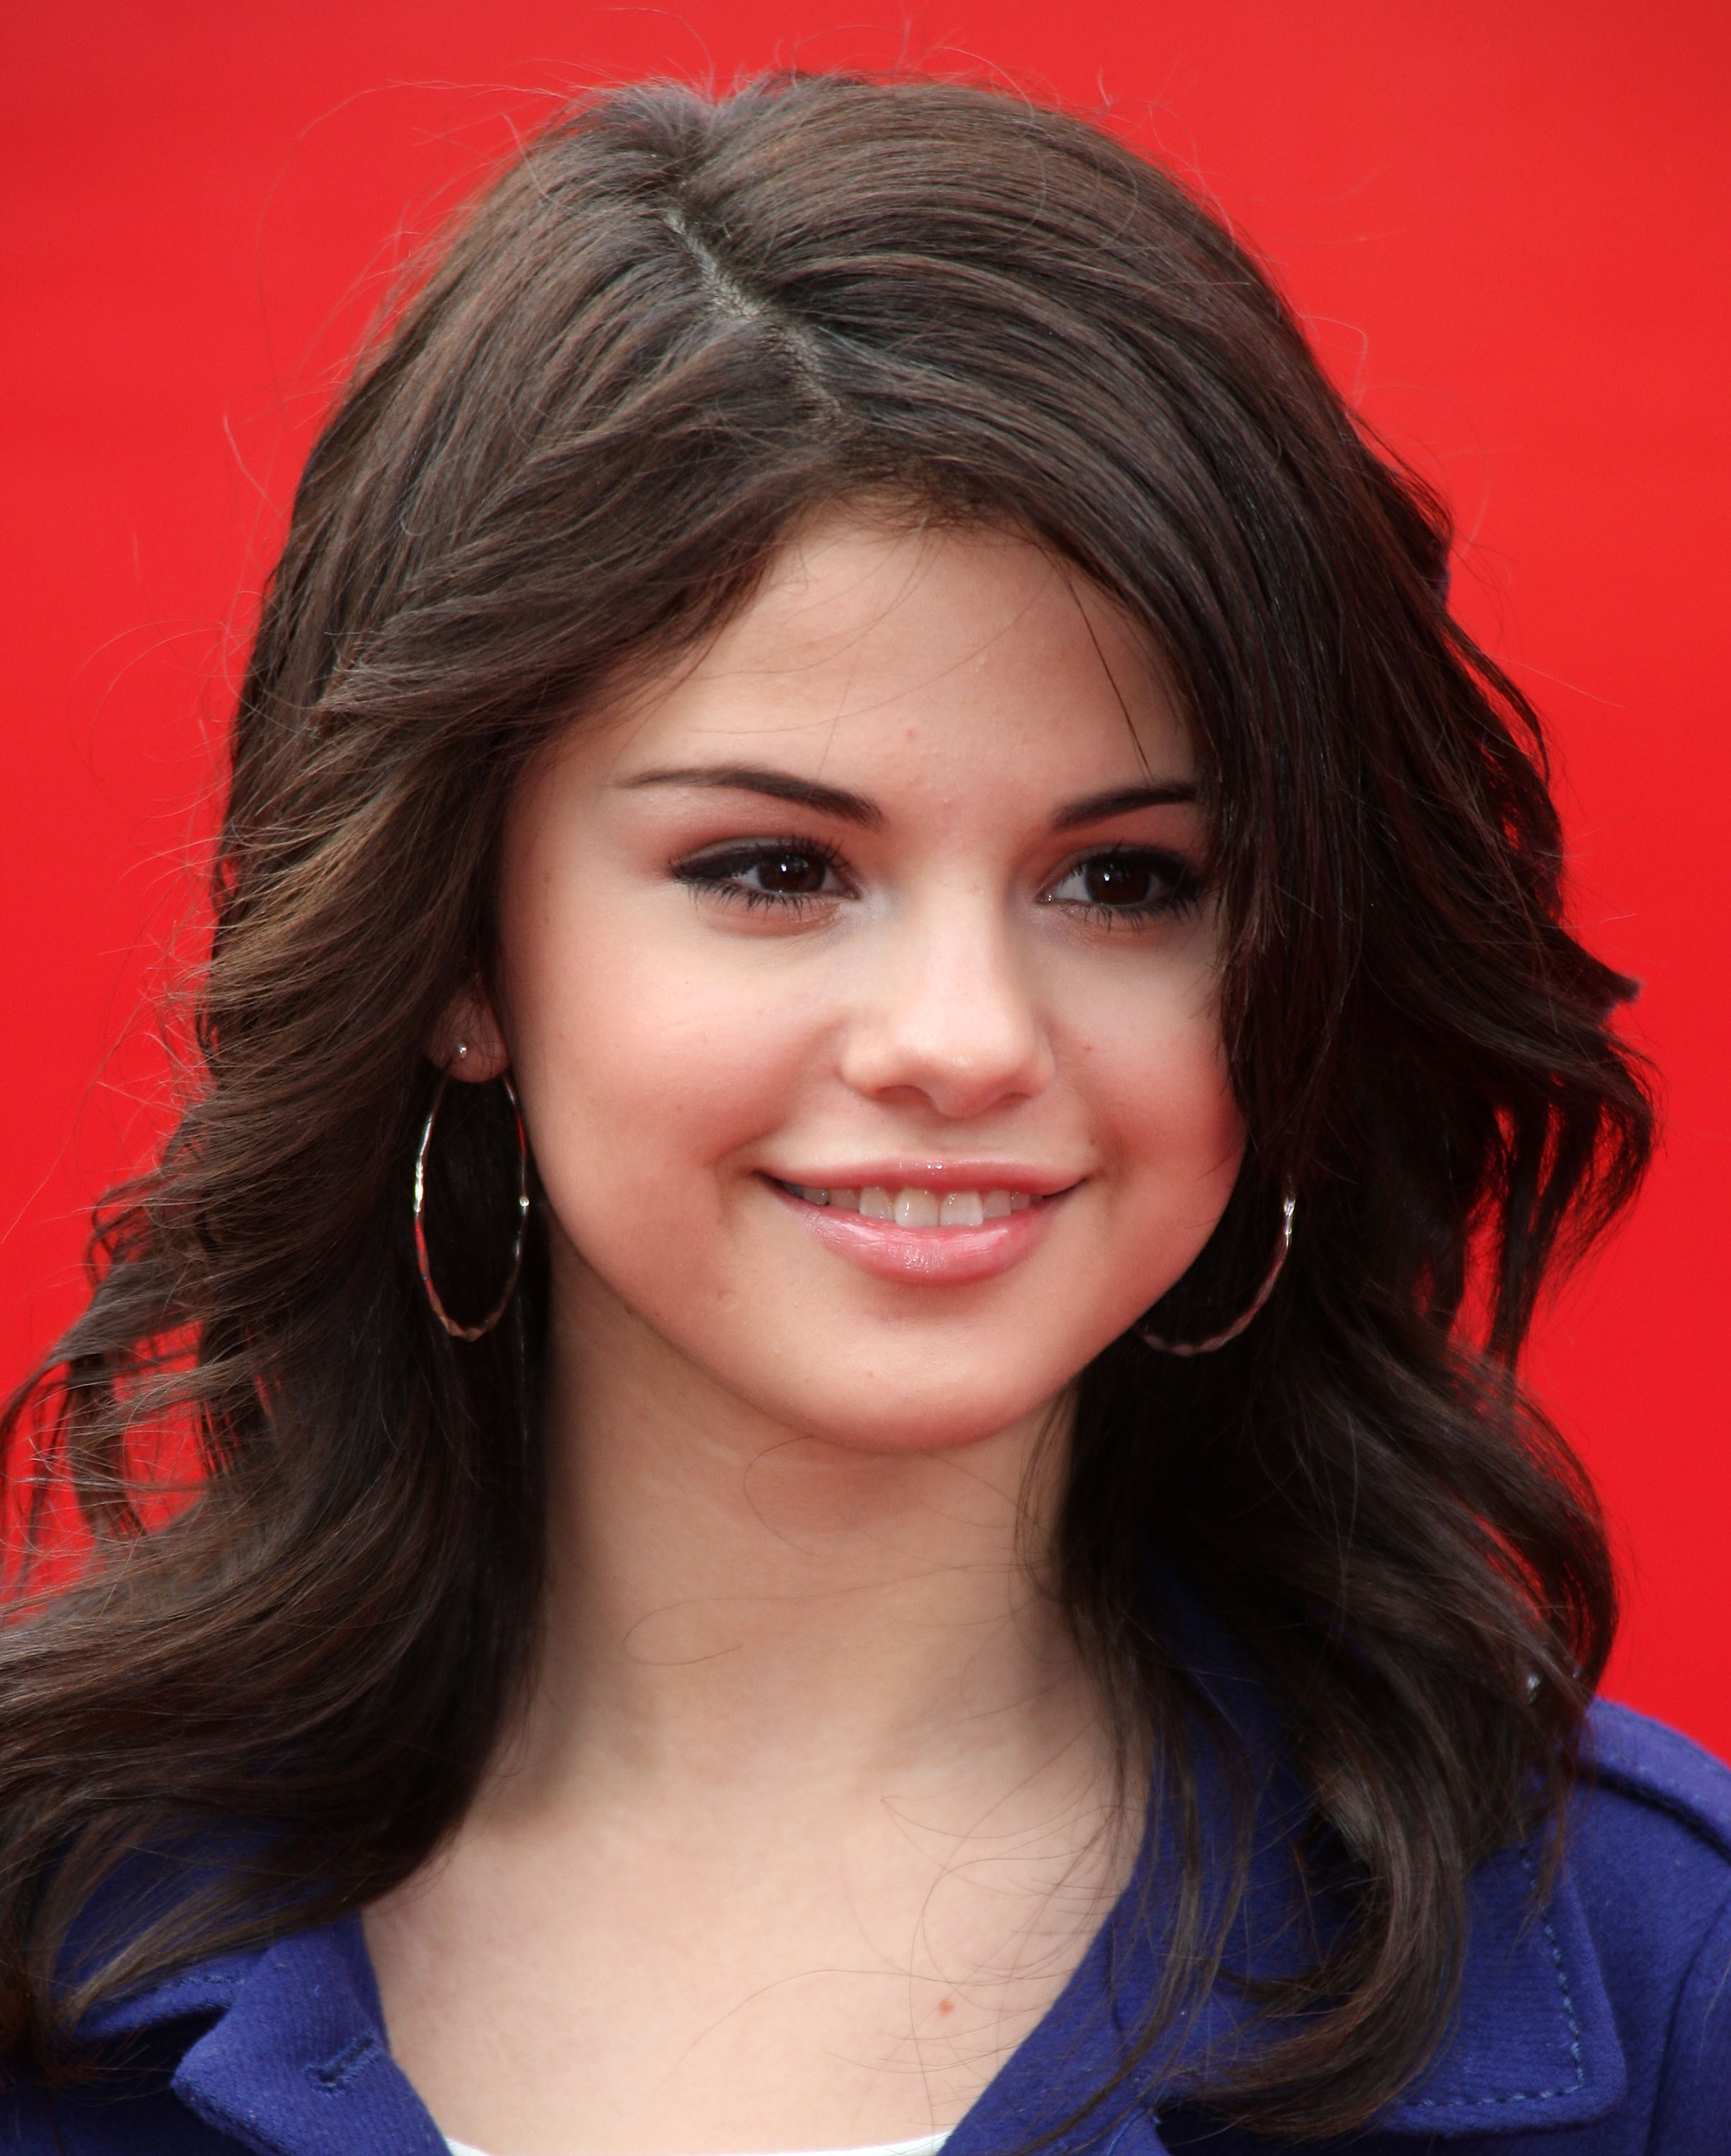 64983_Celebutopia-Selena_Gomez-Variety08s_Power_of_Youth_Event-07_122_402lo.jpg